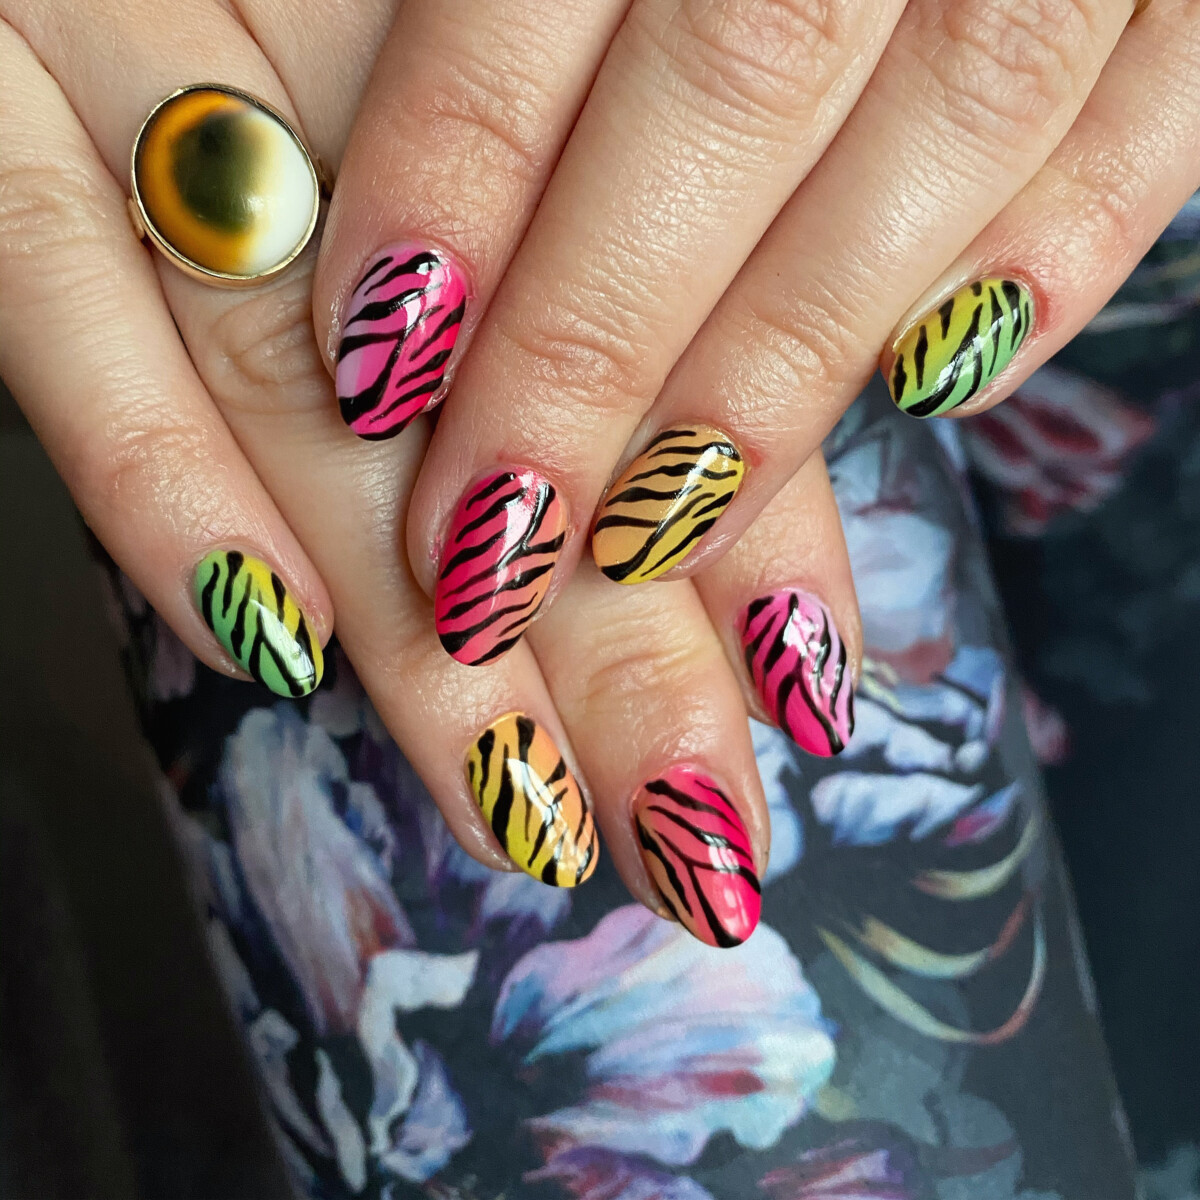 Manicure deluxe + nail art extravagante